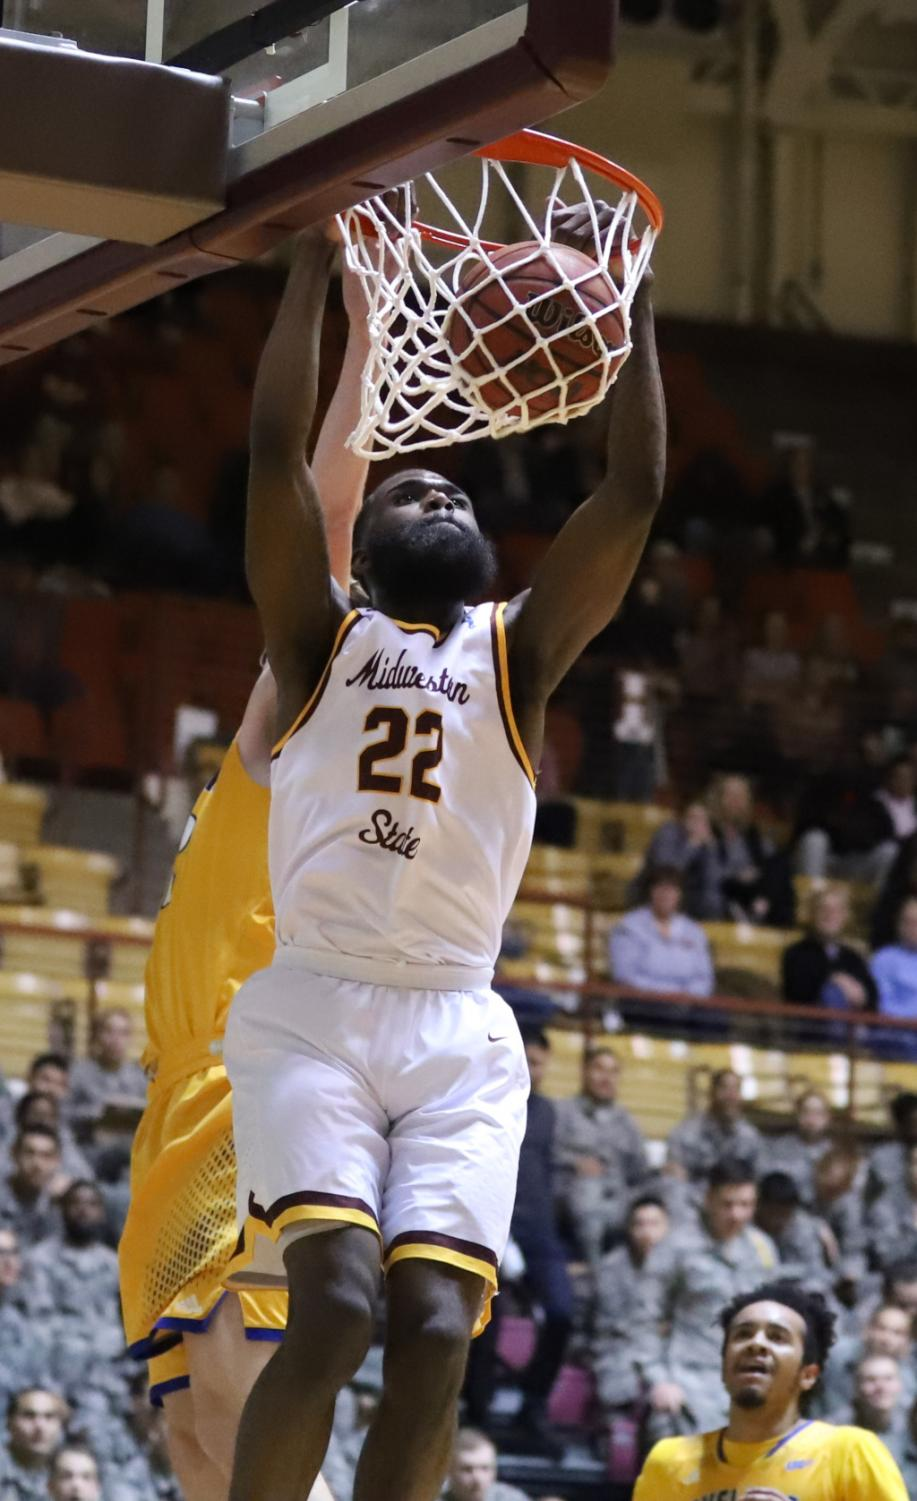 Gilbert+Thomas%2C+general+studies+junior+completes+his+second+dunk+against+Texas+A%26M+Kingsville.+Photo+by+Sharome+Burton.+March+2.